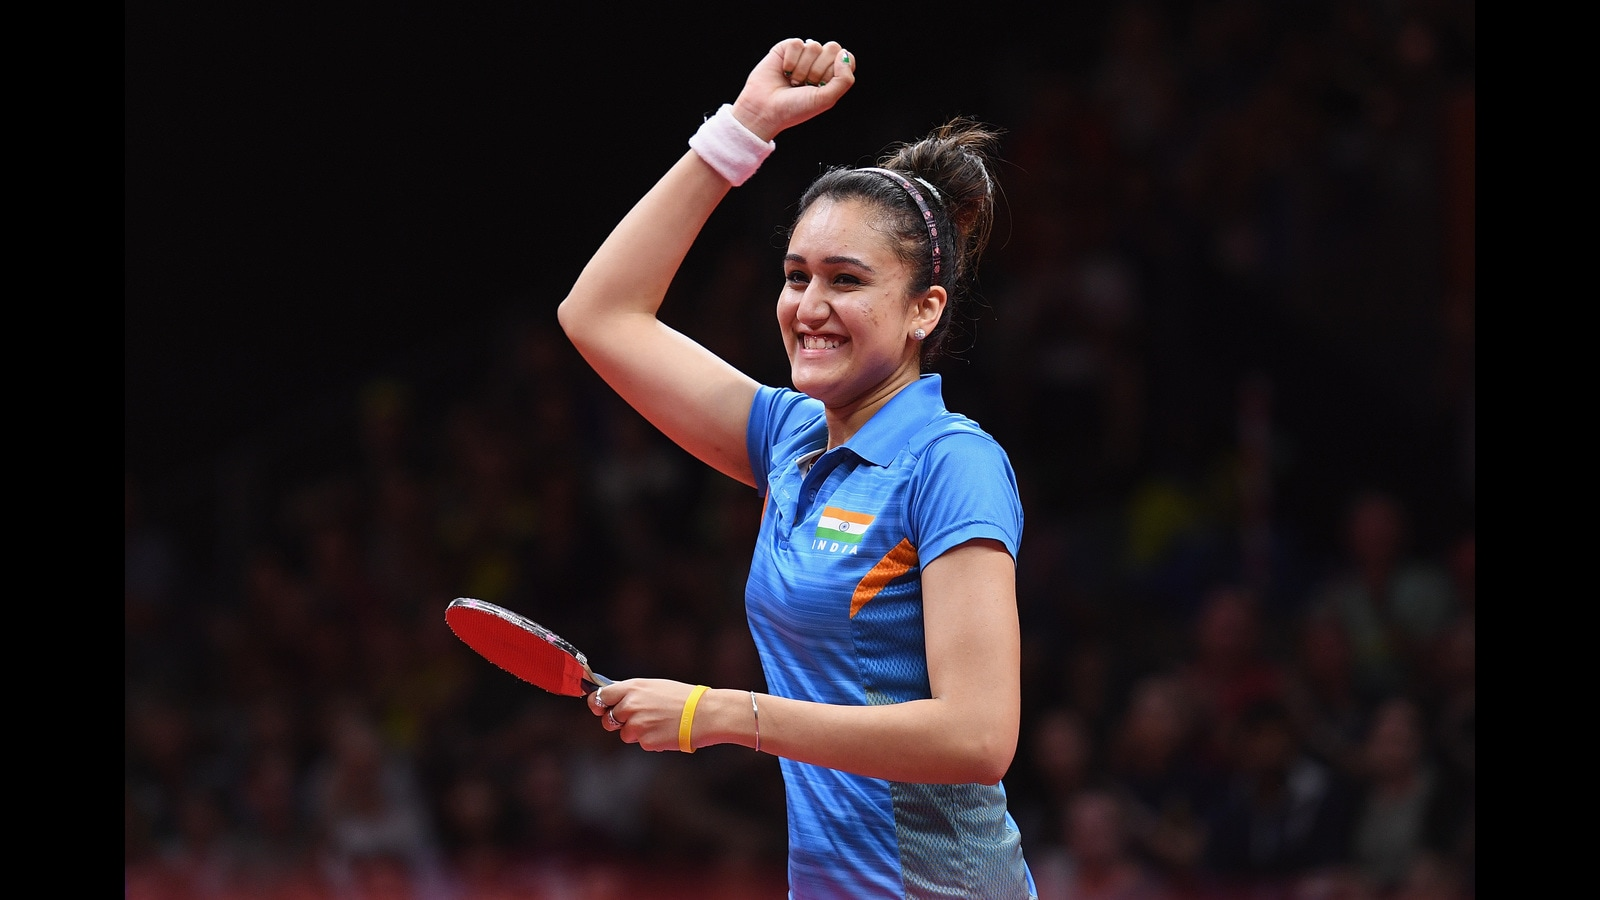 Khel Ratna awardee Manika Batra: I can only play well and let my work speak  - Hindustan Times